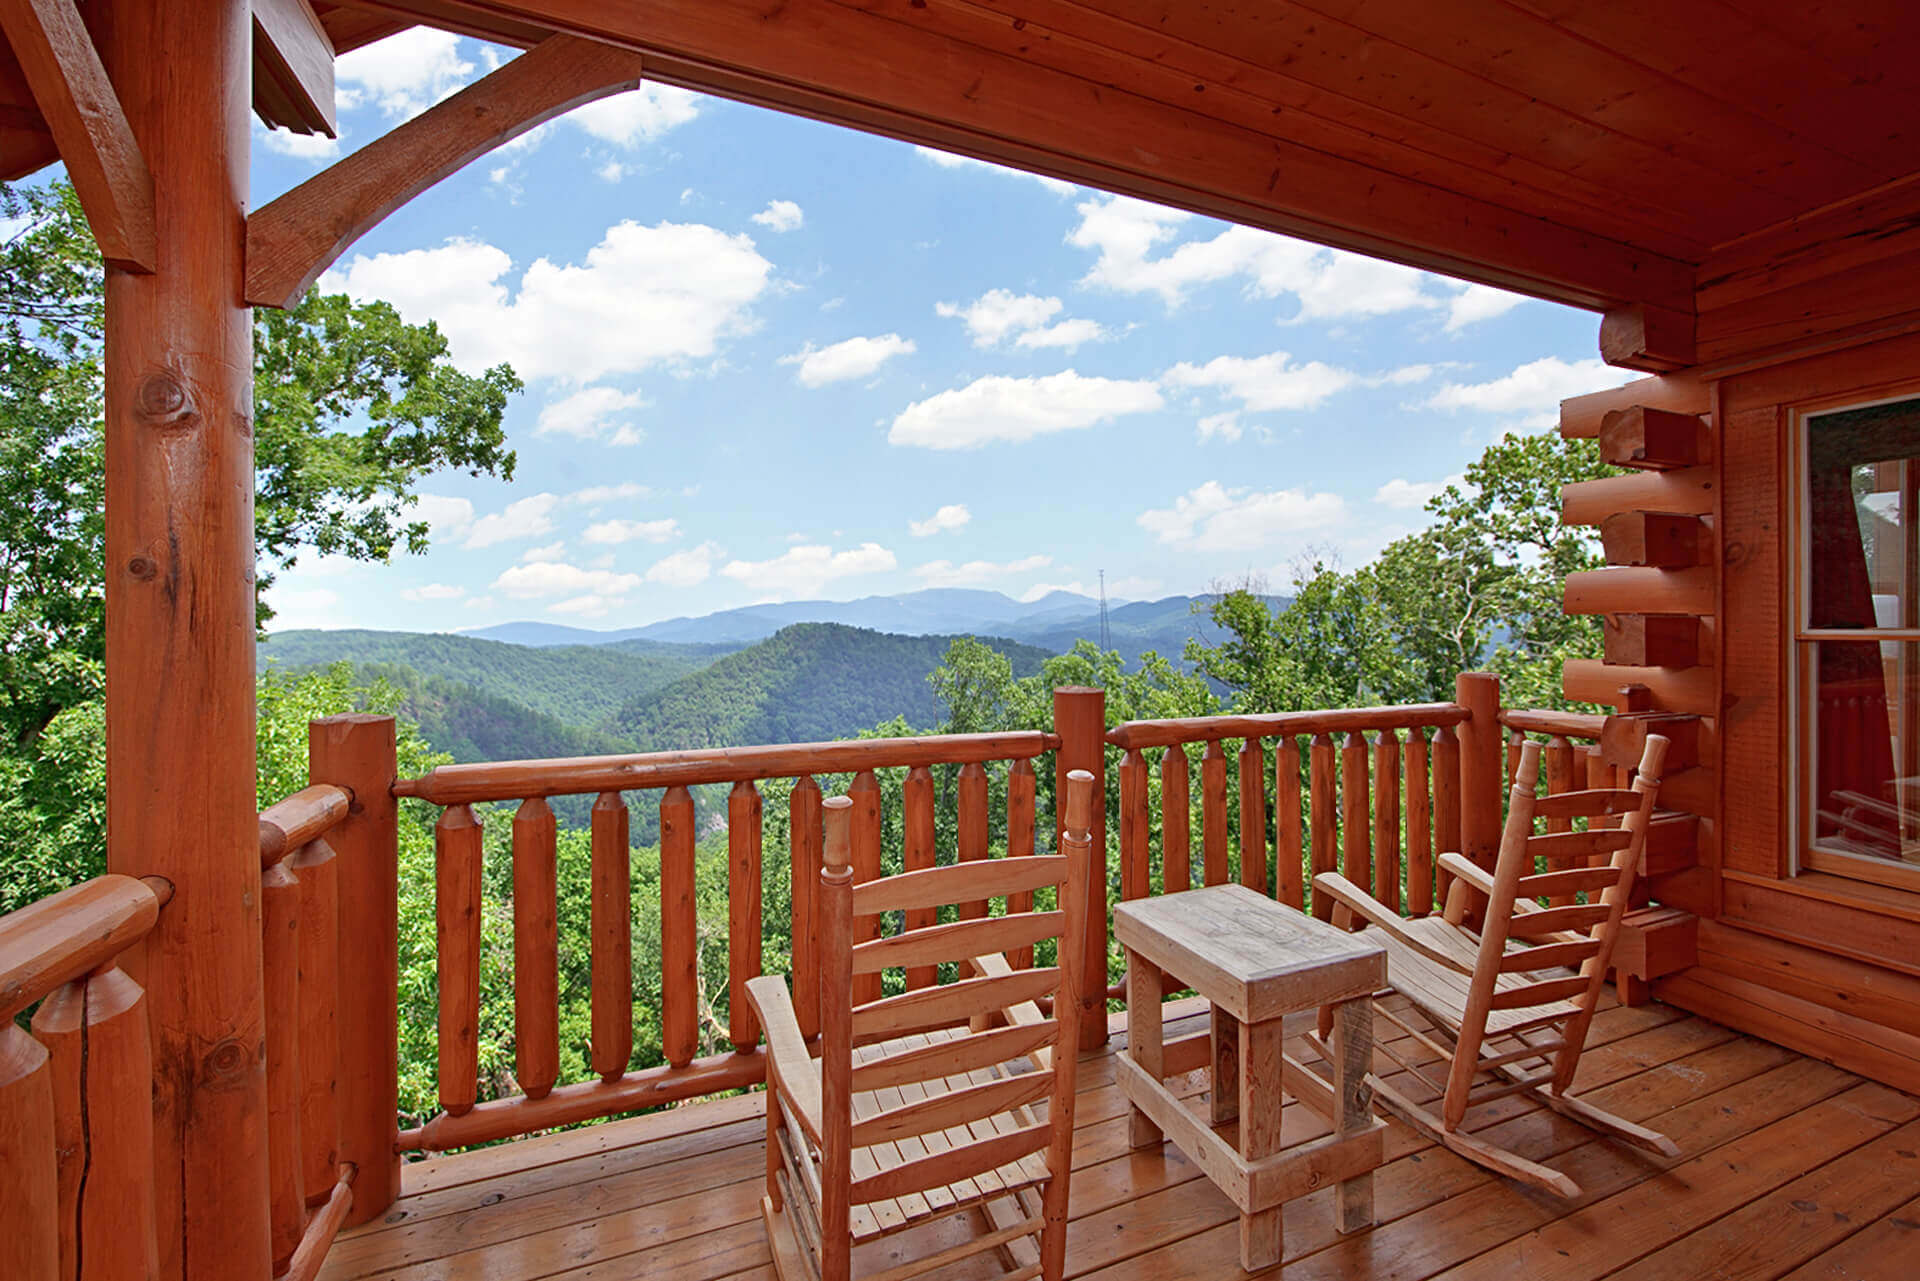 is with accommodation valley hot guests six s tubs choose cove from two cozy one brothers of east wears louisiana in sized us the sleeping bedroom states natural a heaven can heavens log bath retreats cabins view destinations queen cabin comfortably united